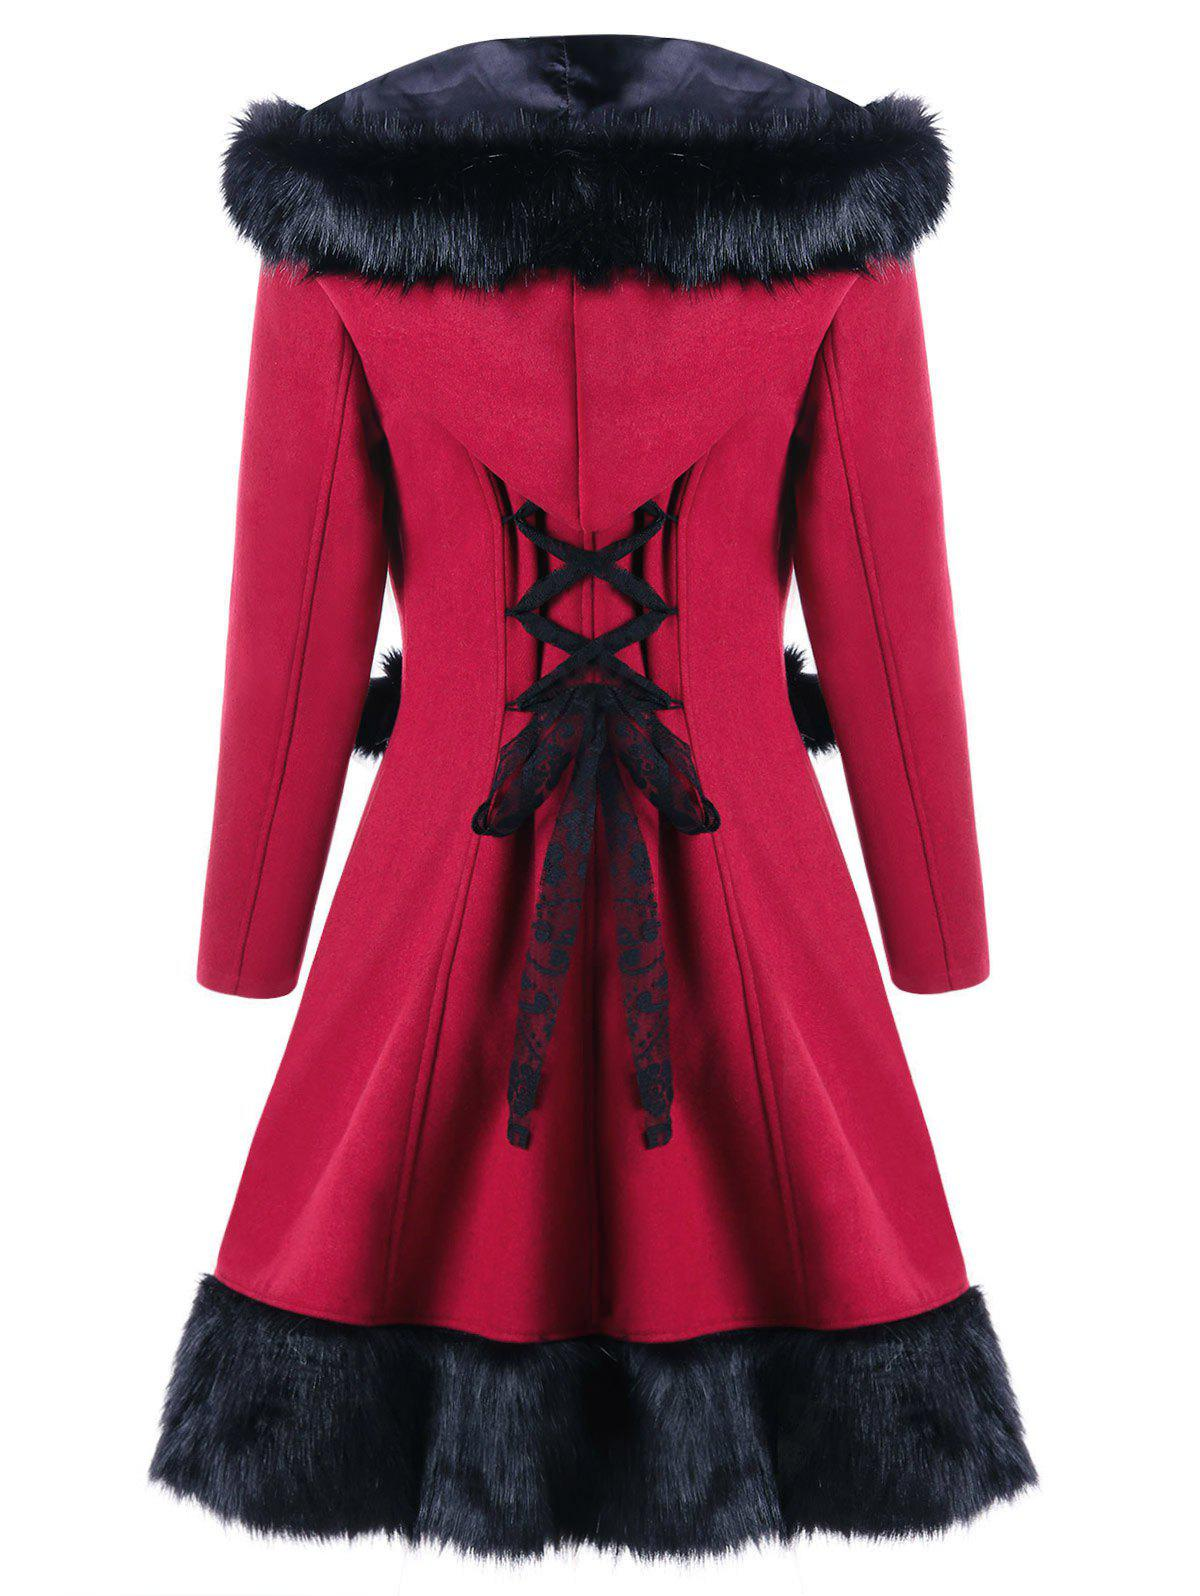 Hooded Faux Fur Panel Lace Up Longline CoatWOMEN<br><br>Size: L; Color: RED; Clothes Type: Wool &amp; Blends; Material: Faux Fur,Polyester; Type: Asymmetric Length; Shirt Length: Long; Sleeve Length: Full; Collar: Hooded; Closure Type: Single Breasted; Pattern Type: Others; Style: Fashion; Season: Fall,Winter; With Belt: No; Weight: 1.0700kg; Package Contents: 1 x Coat;